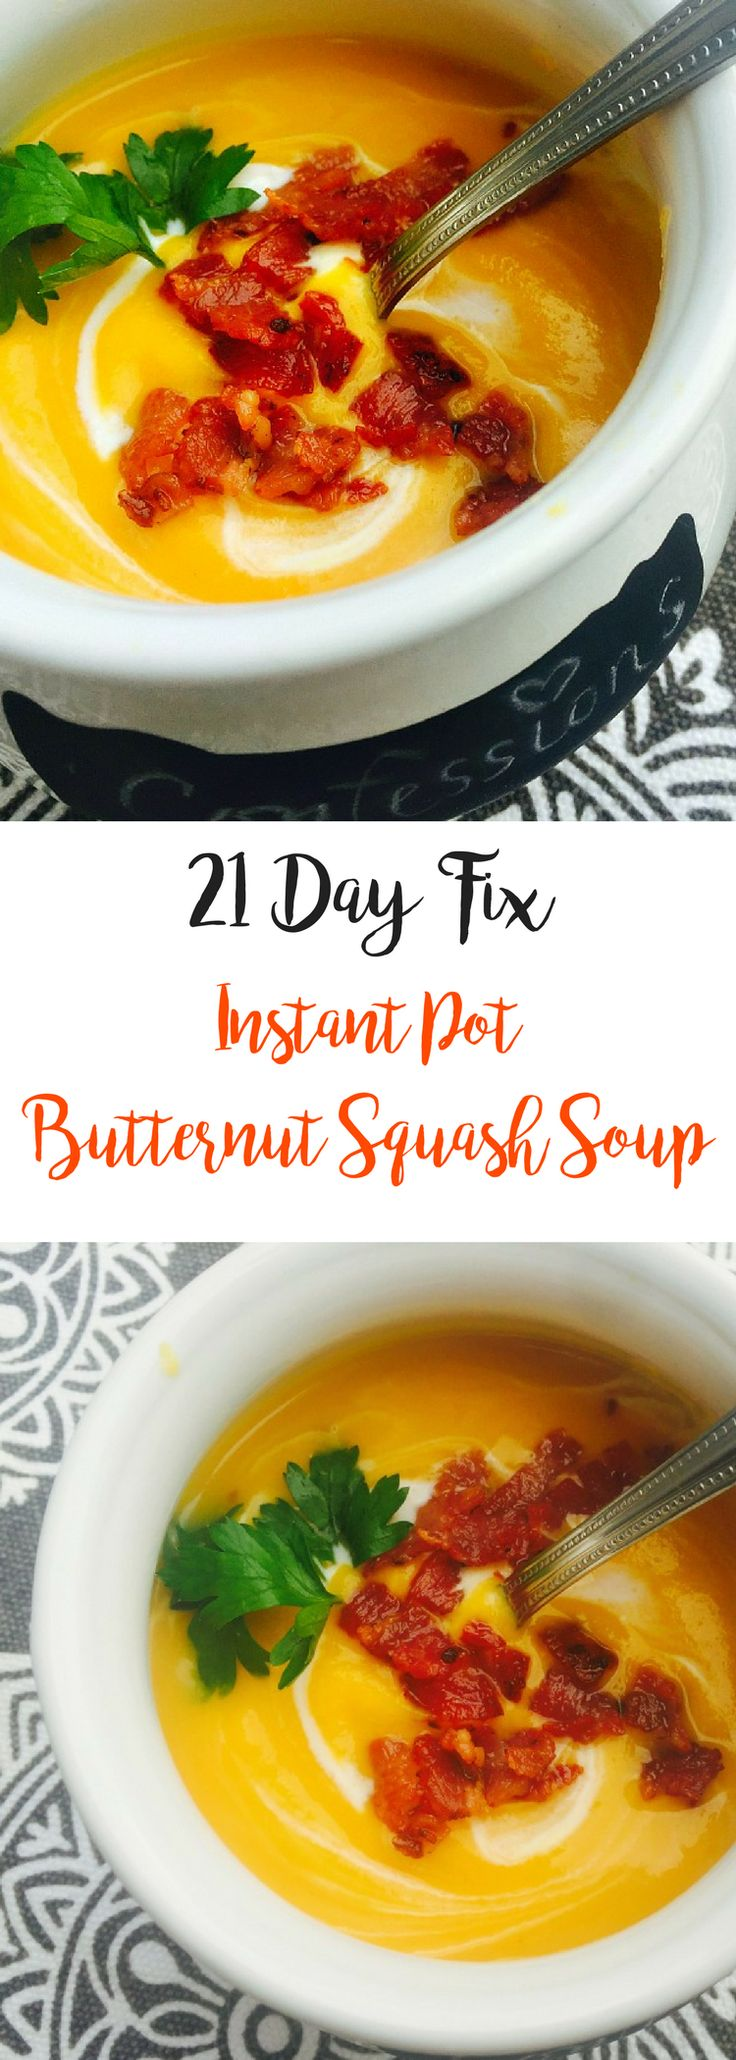 This 21 Day Fix Butternut Squash Soup is dairy free, gluten free, but oh so comforting and delicious.  Updated with Instant Pot directions!  Confession #98- I have wasted many a Butternut Squash over the years. I mean, while at the farm stand, it always seemed like a fabulous idea to buy one or even a...